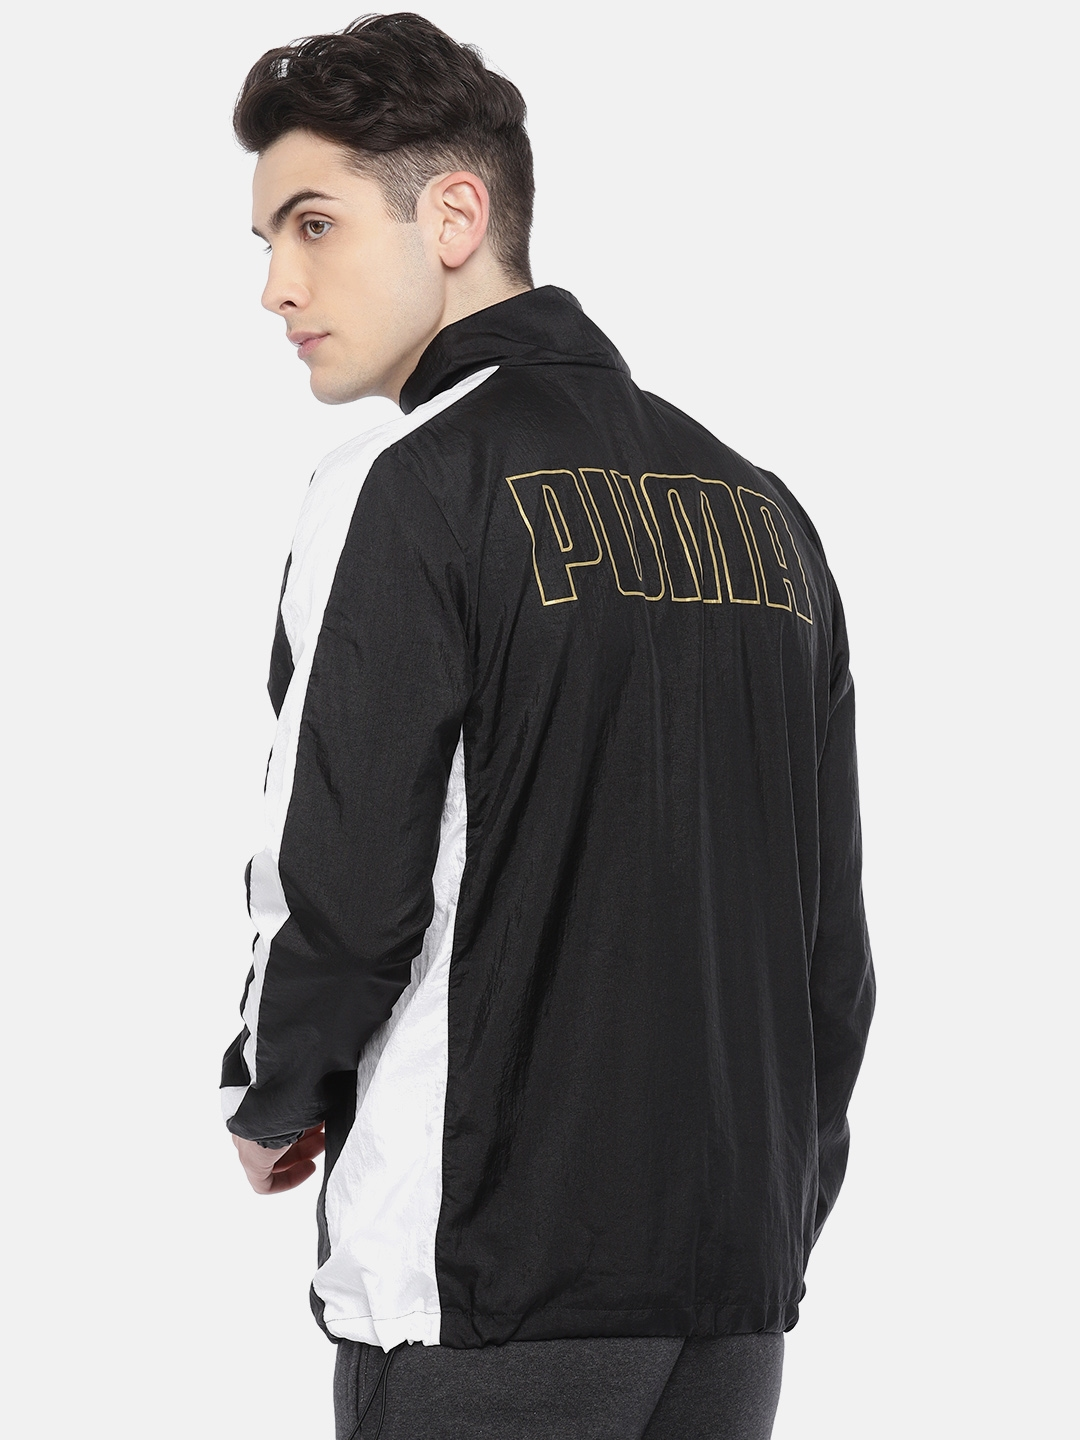 8b61b5d6608d6e Buy Puma Men Black   White Colourblocked T7 BBoy Track Jacket ...